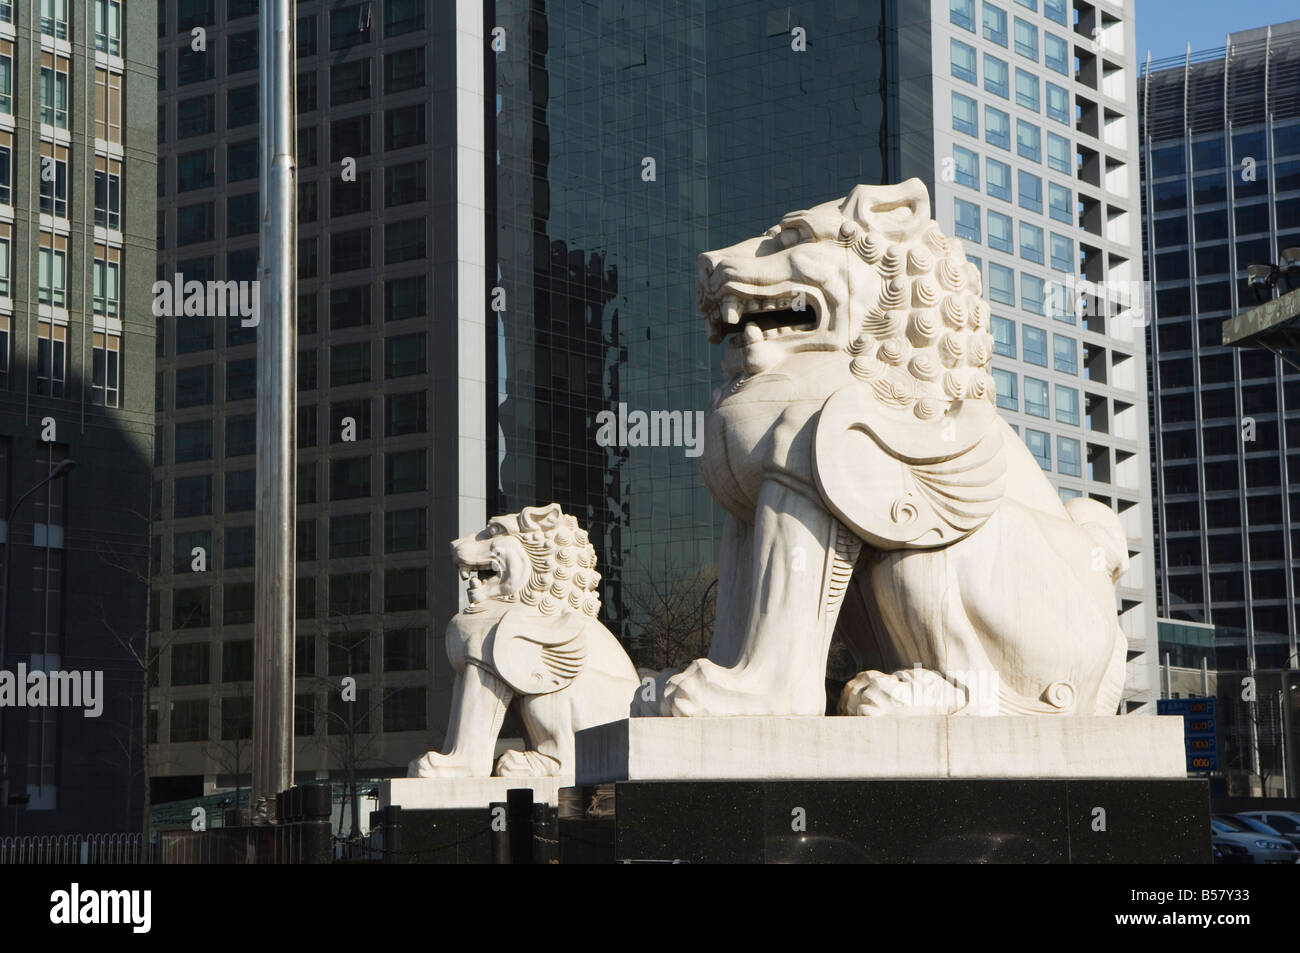 A stone lion statue in the CBD business district, Beijing, China, Asia - Stock Image